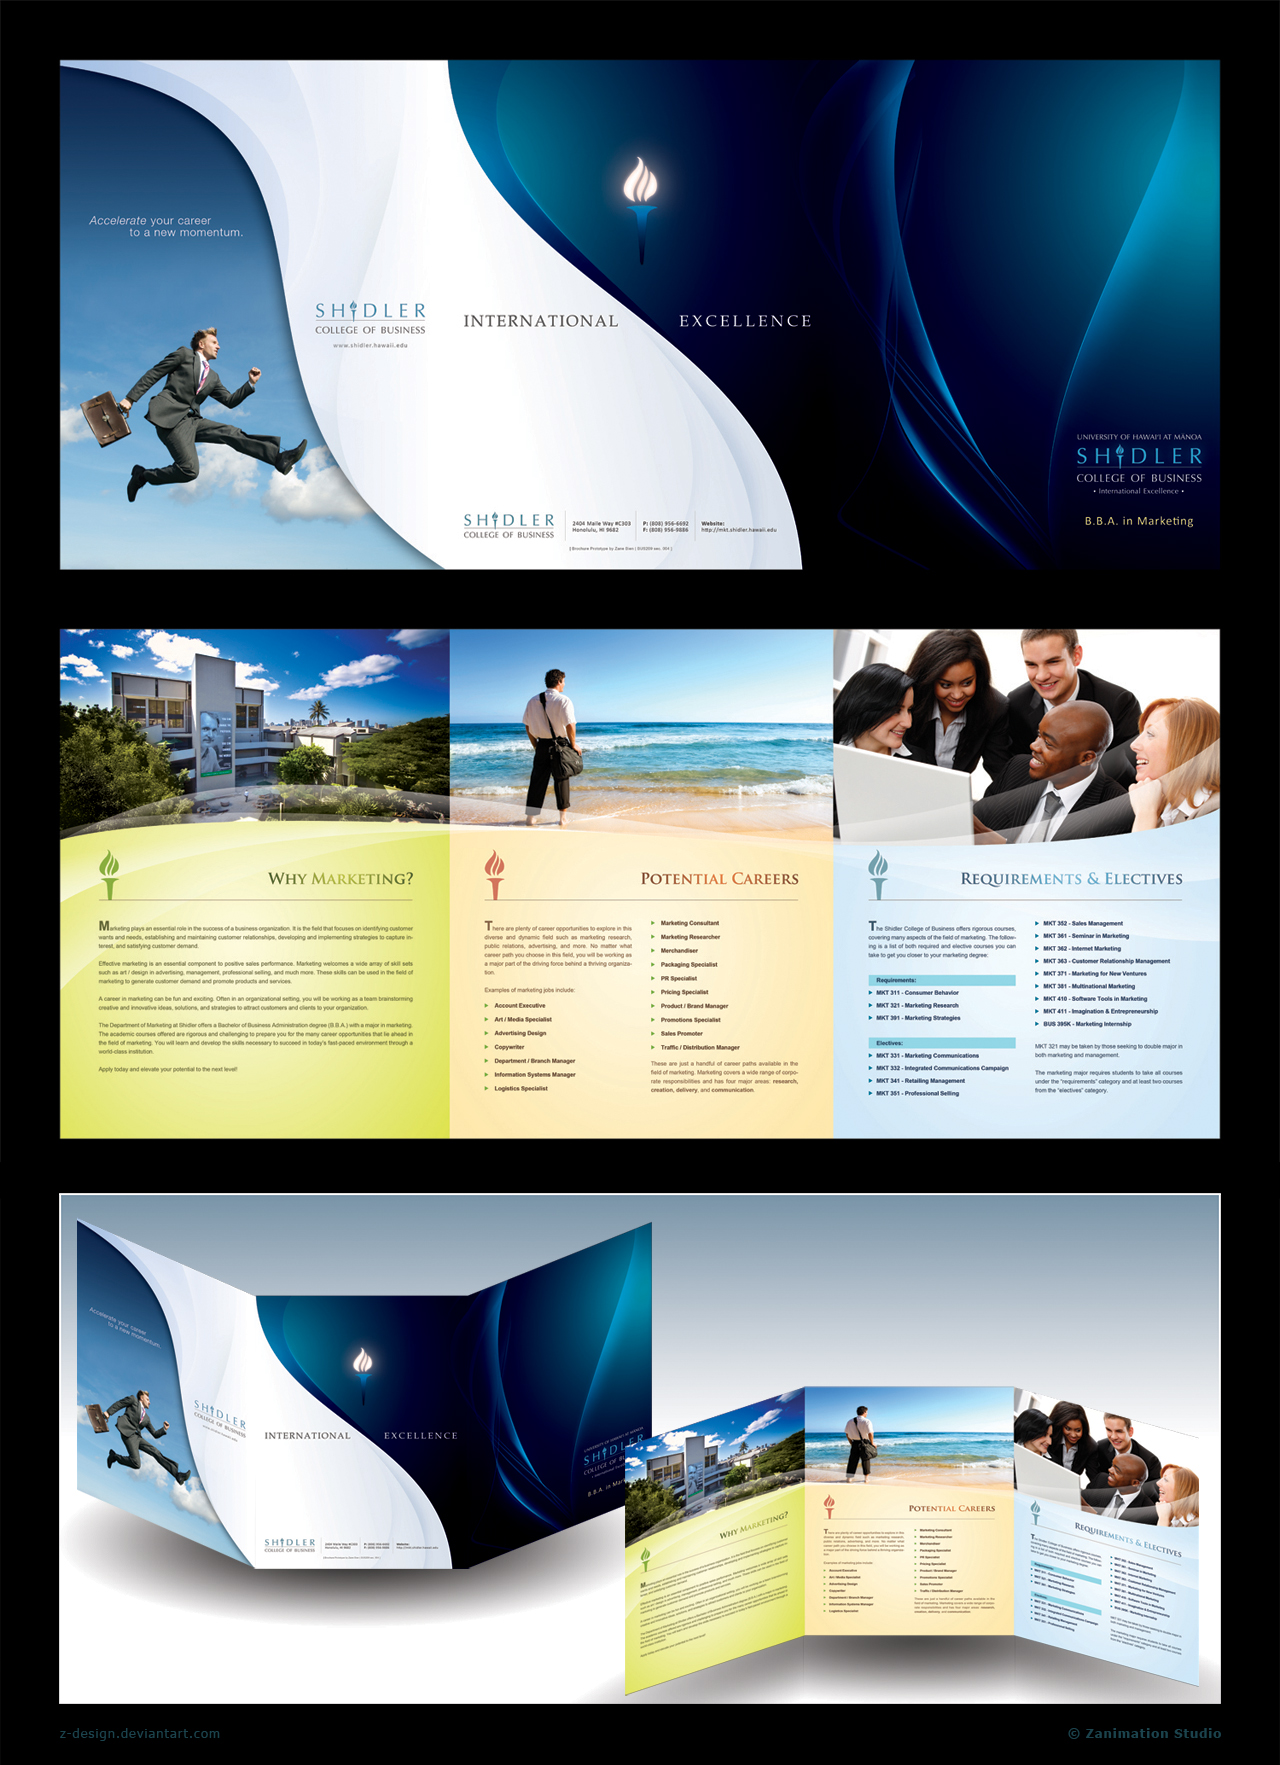 Trifold brochure shidler by z design on deviantart for Designing brochures